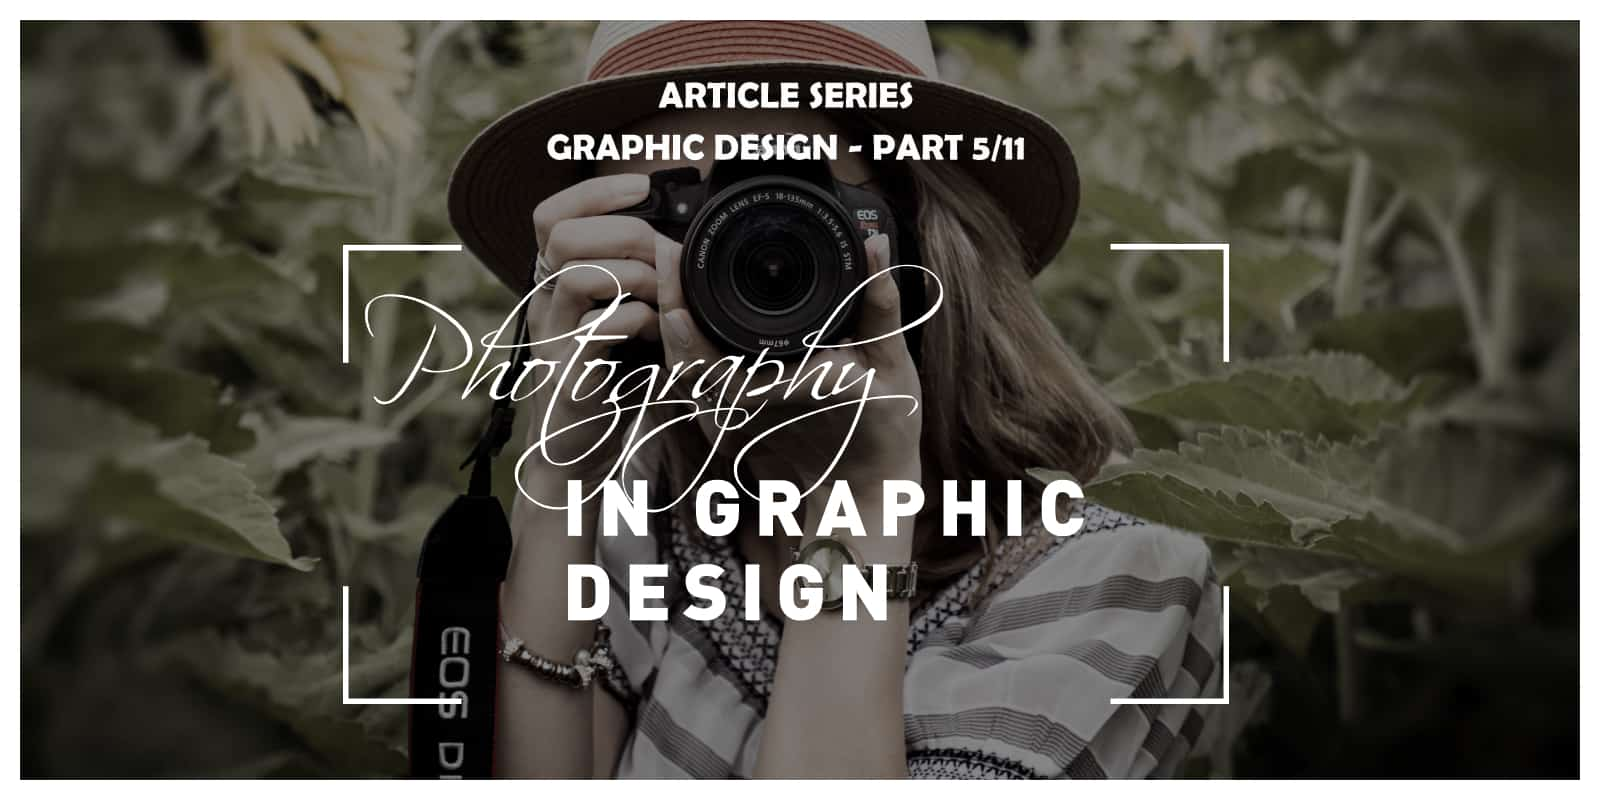 Photography in graphic design